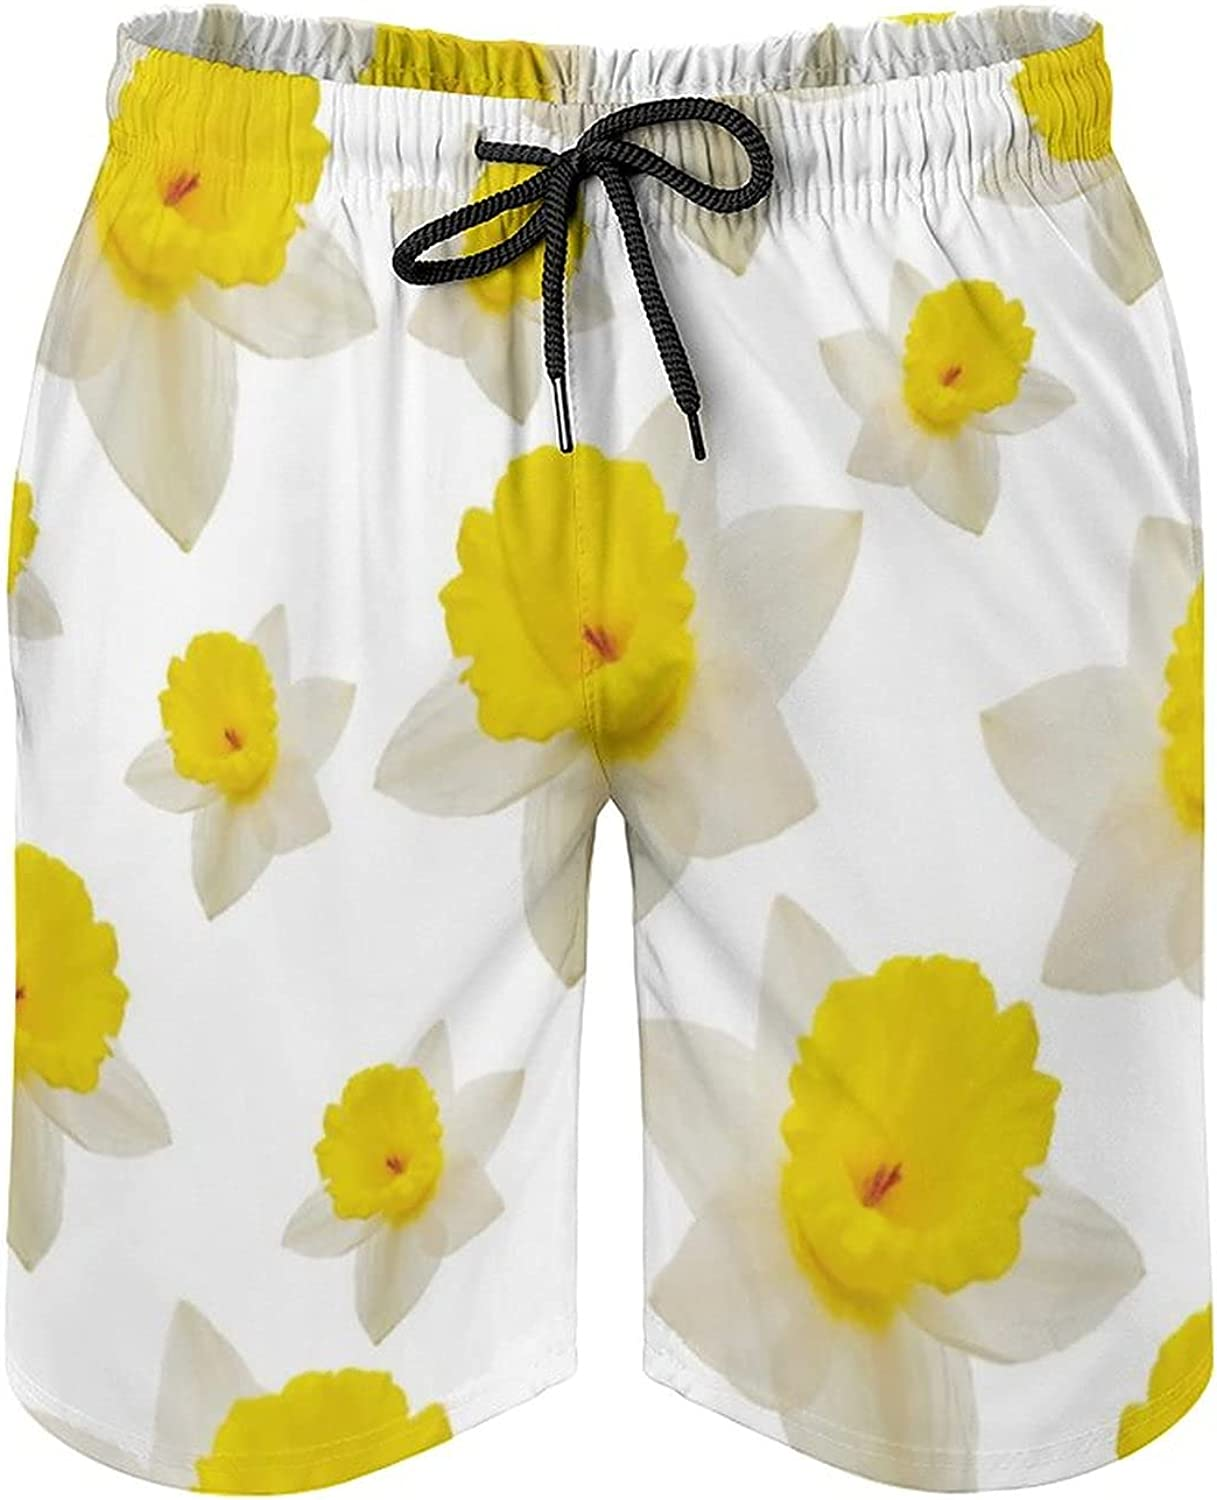 by Unbranded Men's Board Shorts with Zipper Pockets Full Mesh Daffodils